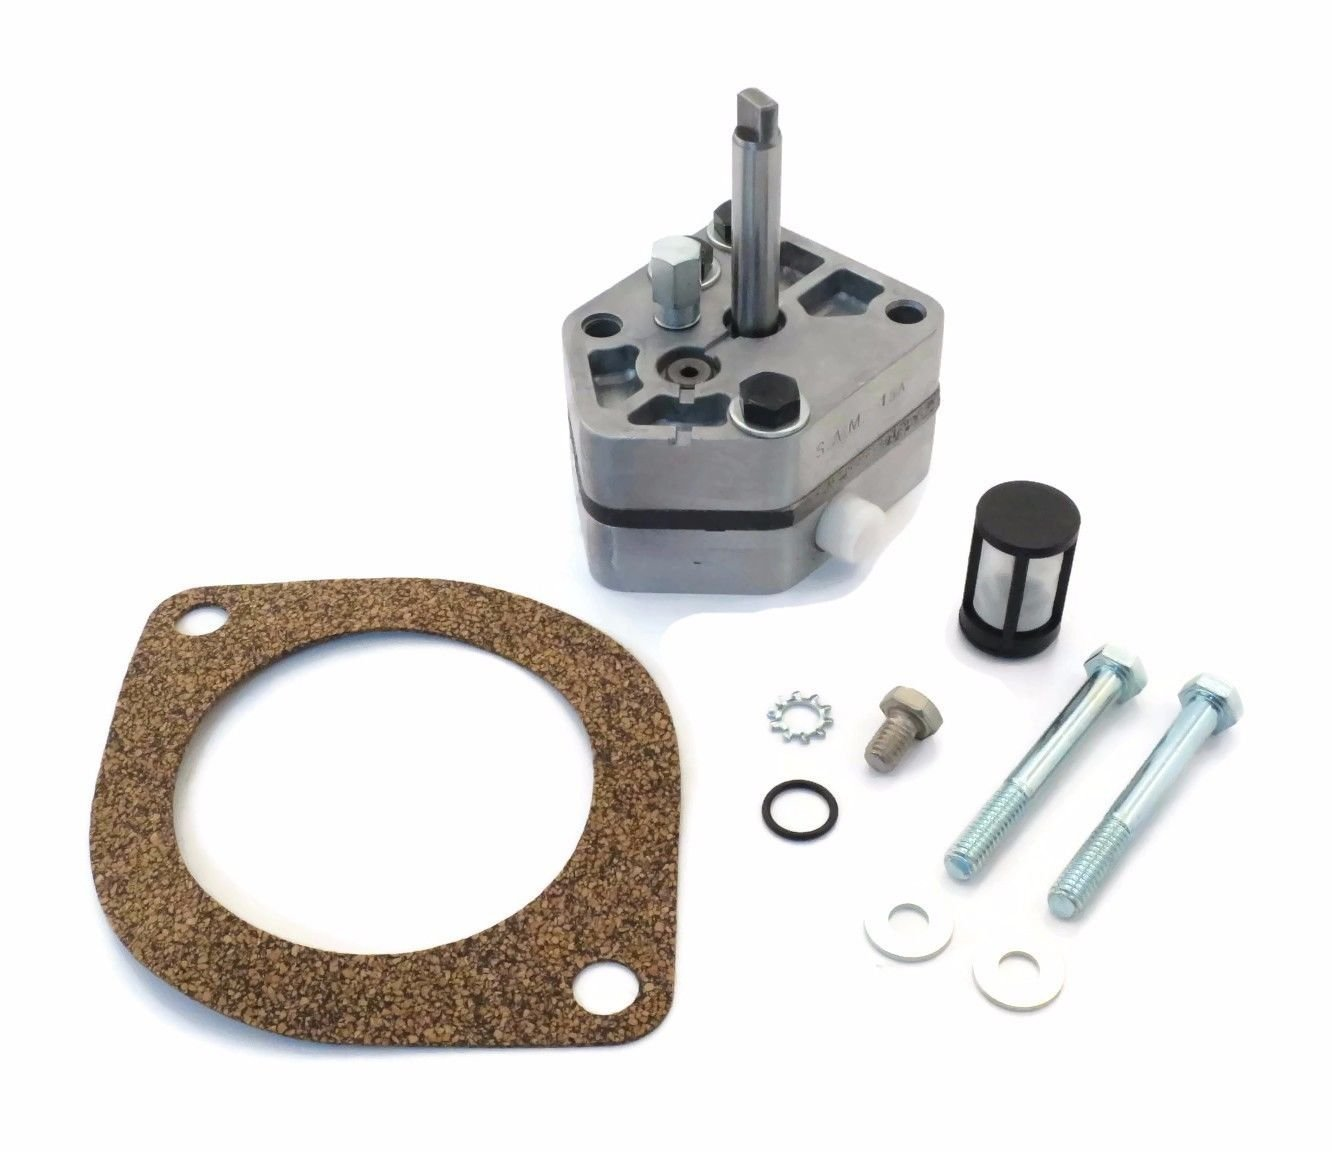 New Snow Plow HYDRAULIC PUMP KIT for Western Fisher 49211 Blade Hydro Uni Mount by The ROP Shop